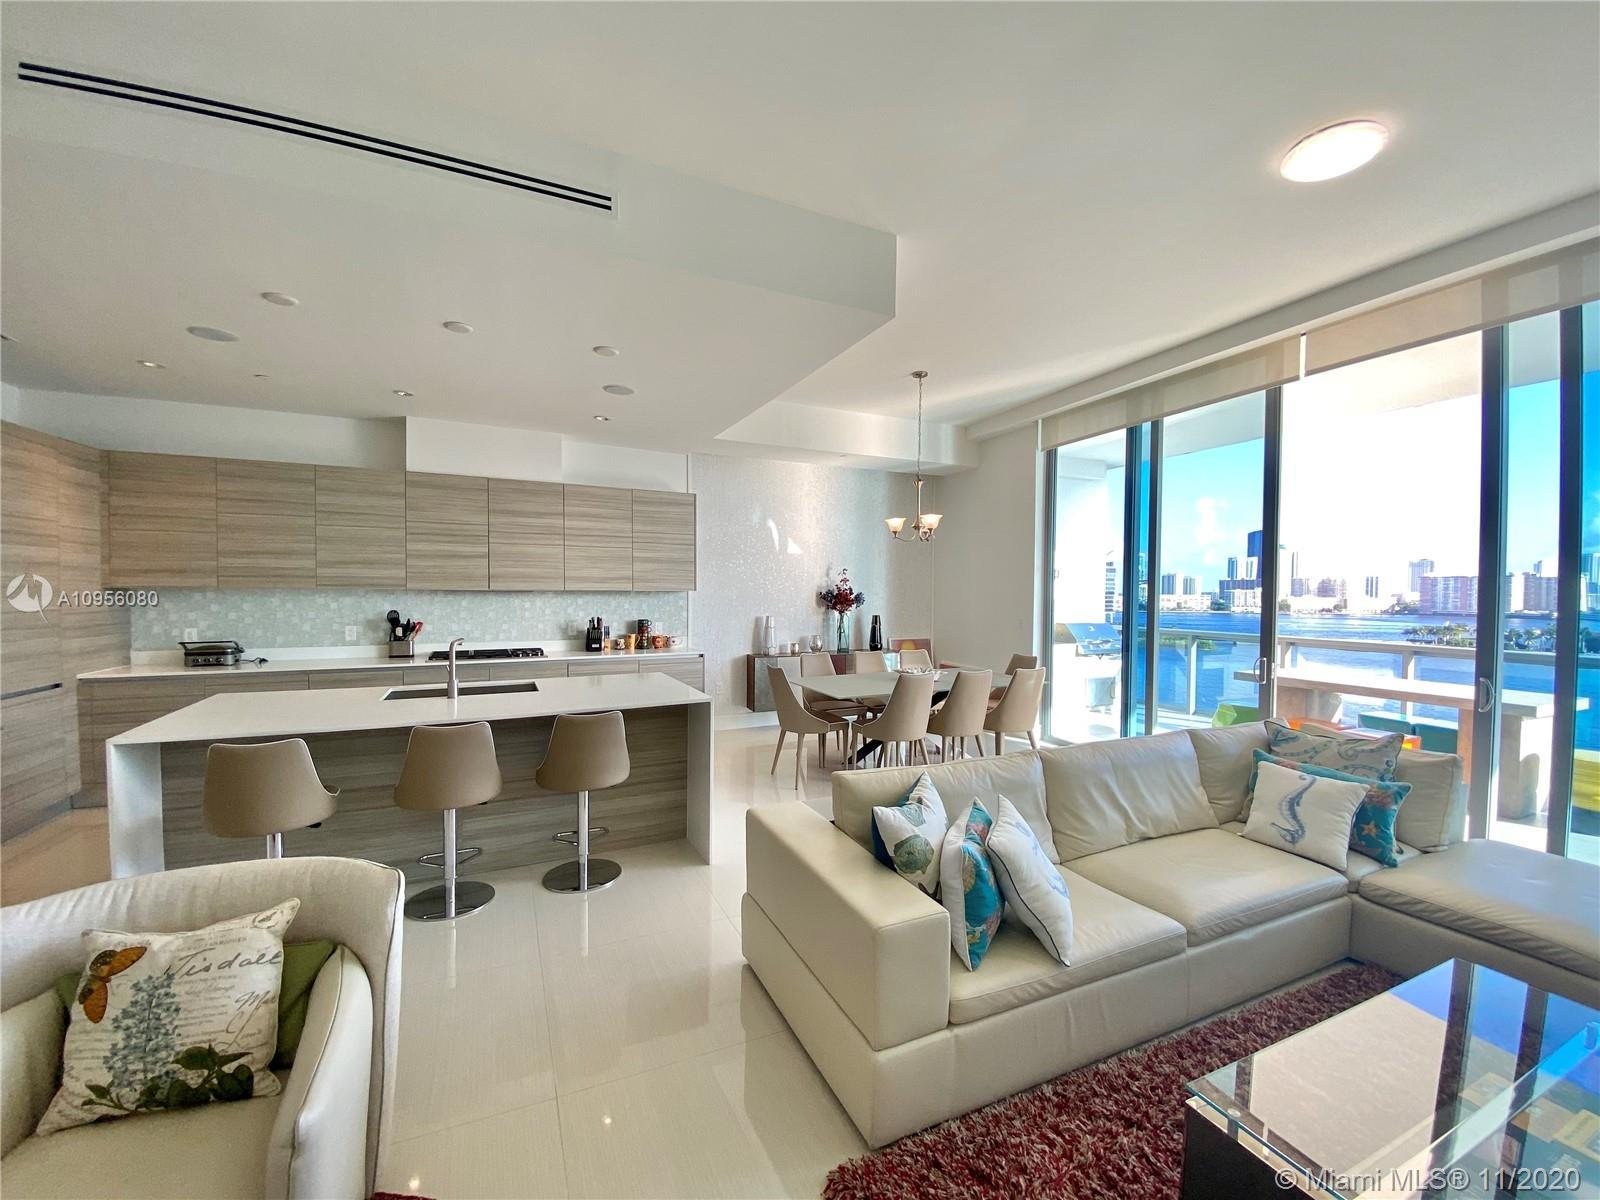 This spectacular, brand new,  4BD/4.5BA unit is one of the best deals at the Echo Aventura. Highligh